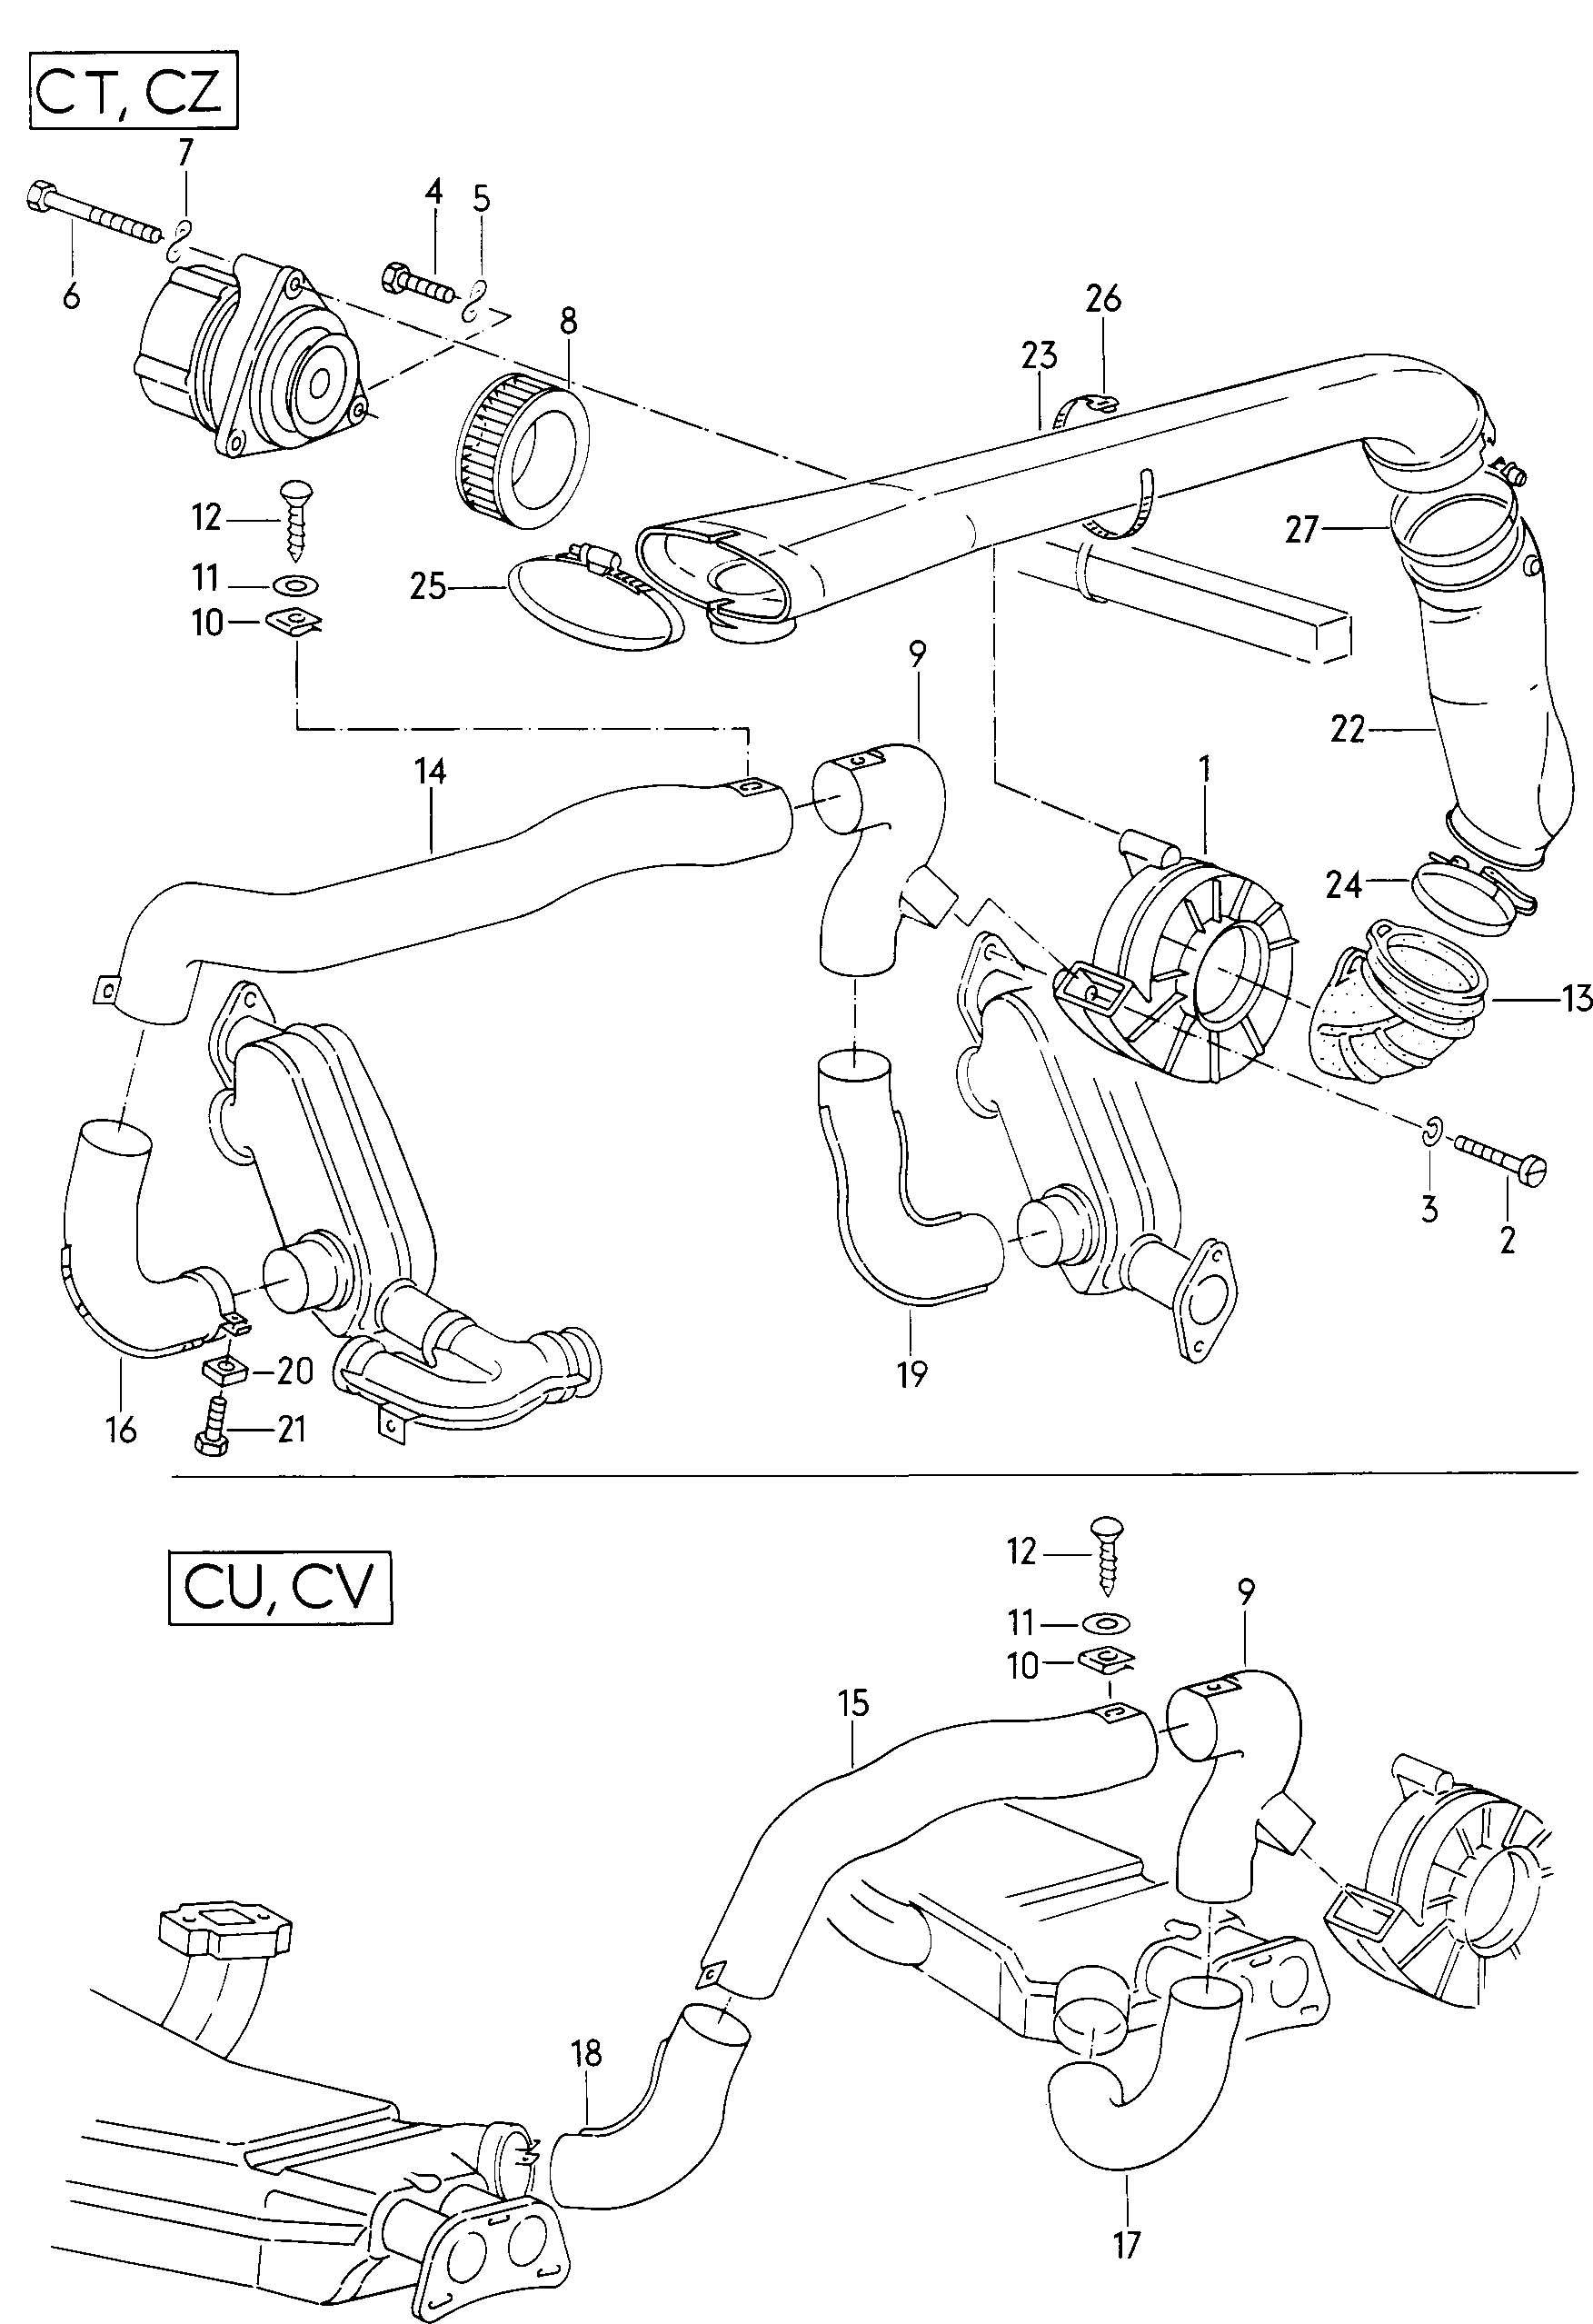 004037000 Air Cooled Engine Diagram on